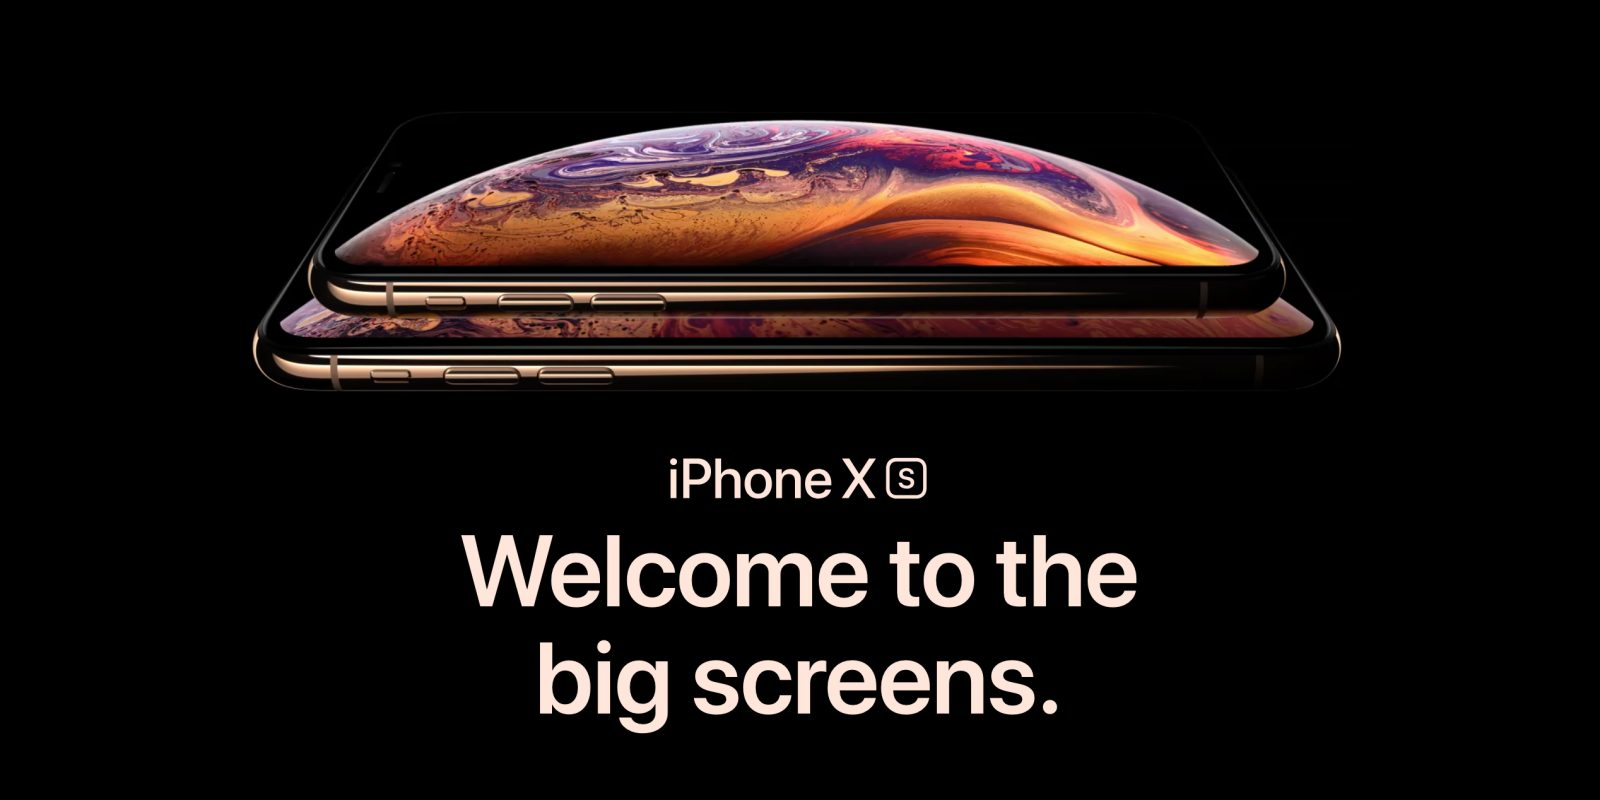 Best Buy rolls out iPhone XS pre-orders for $0/mo  with